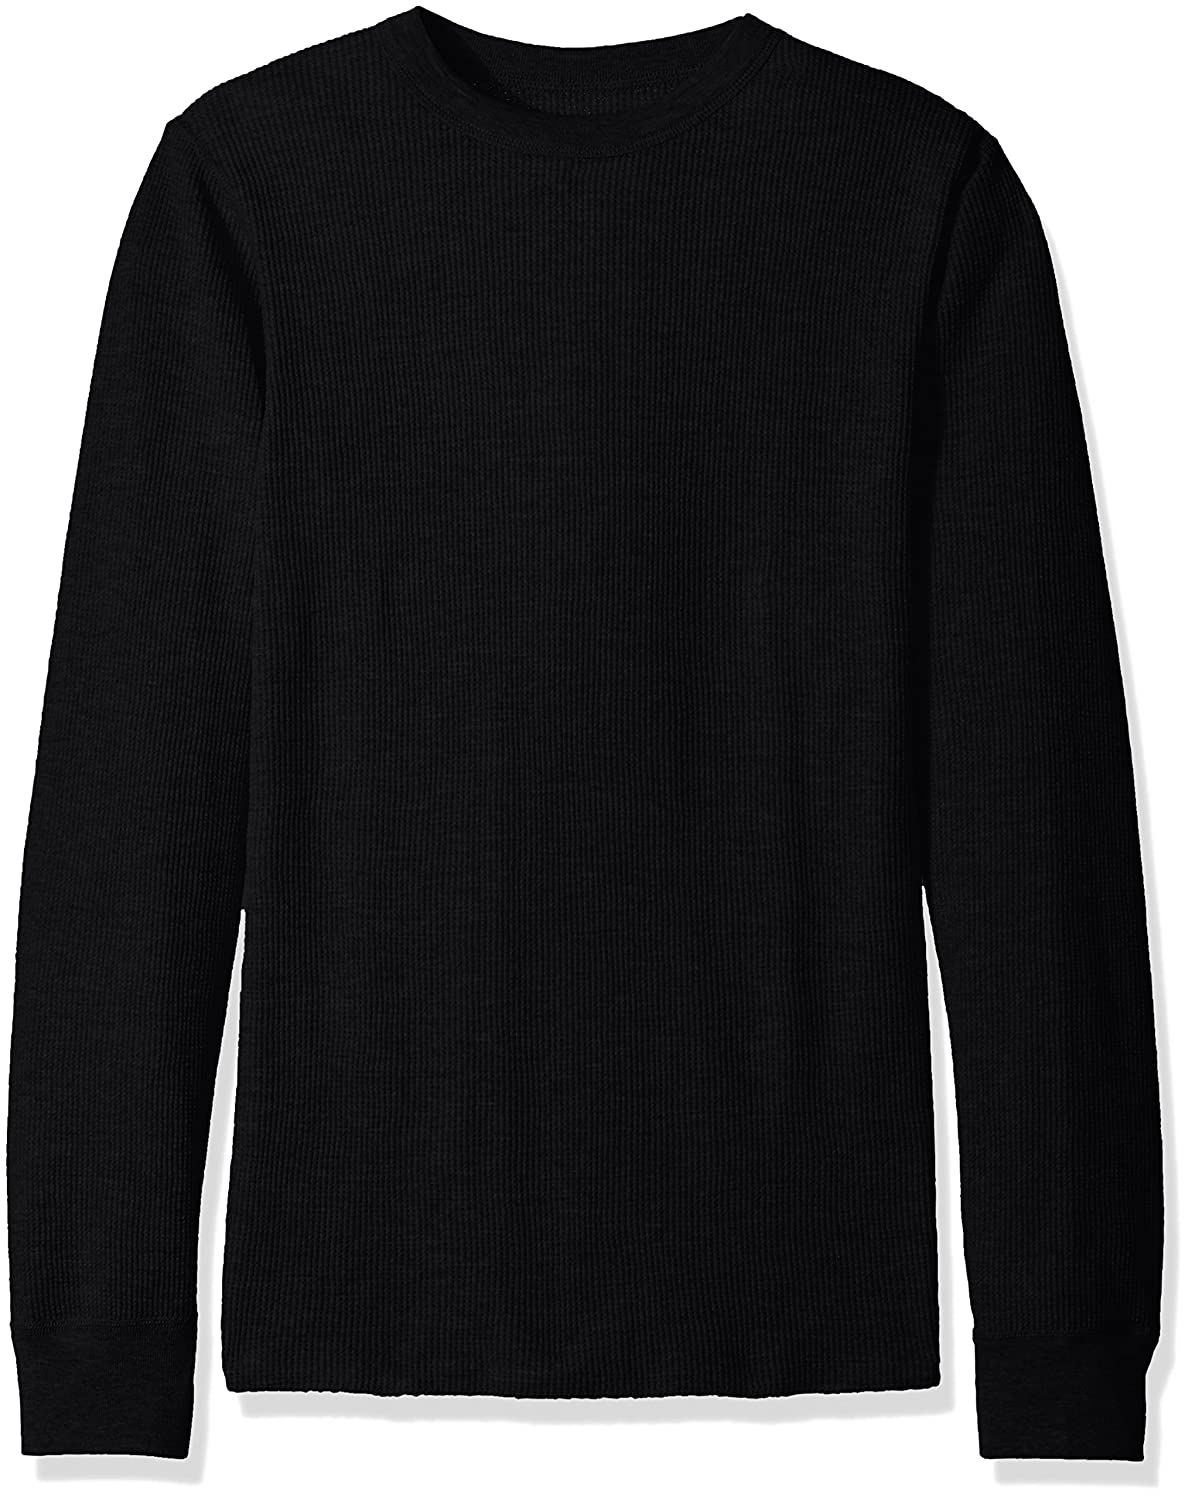 Hanes Men's Ultimate Thermal Crew Hanes Men's Thermals W8885OR